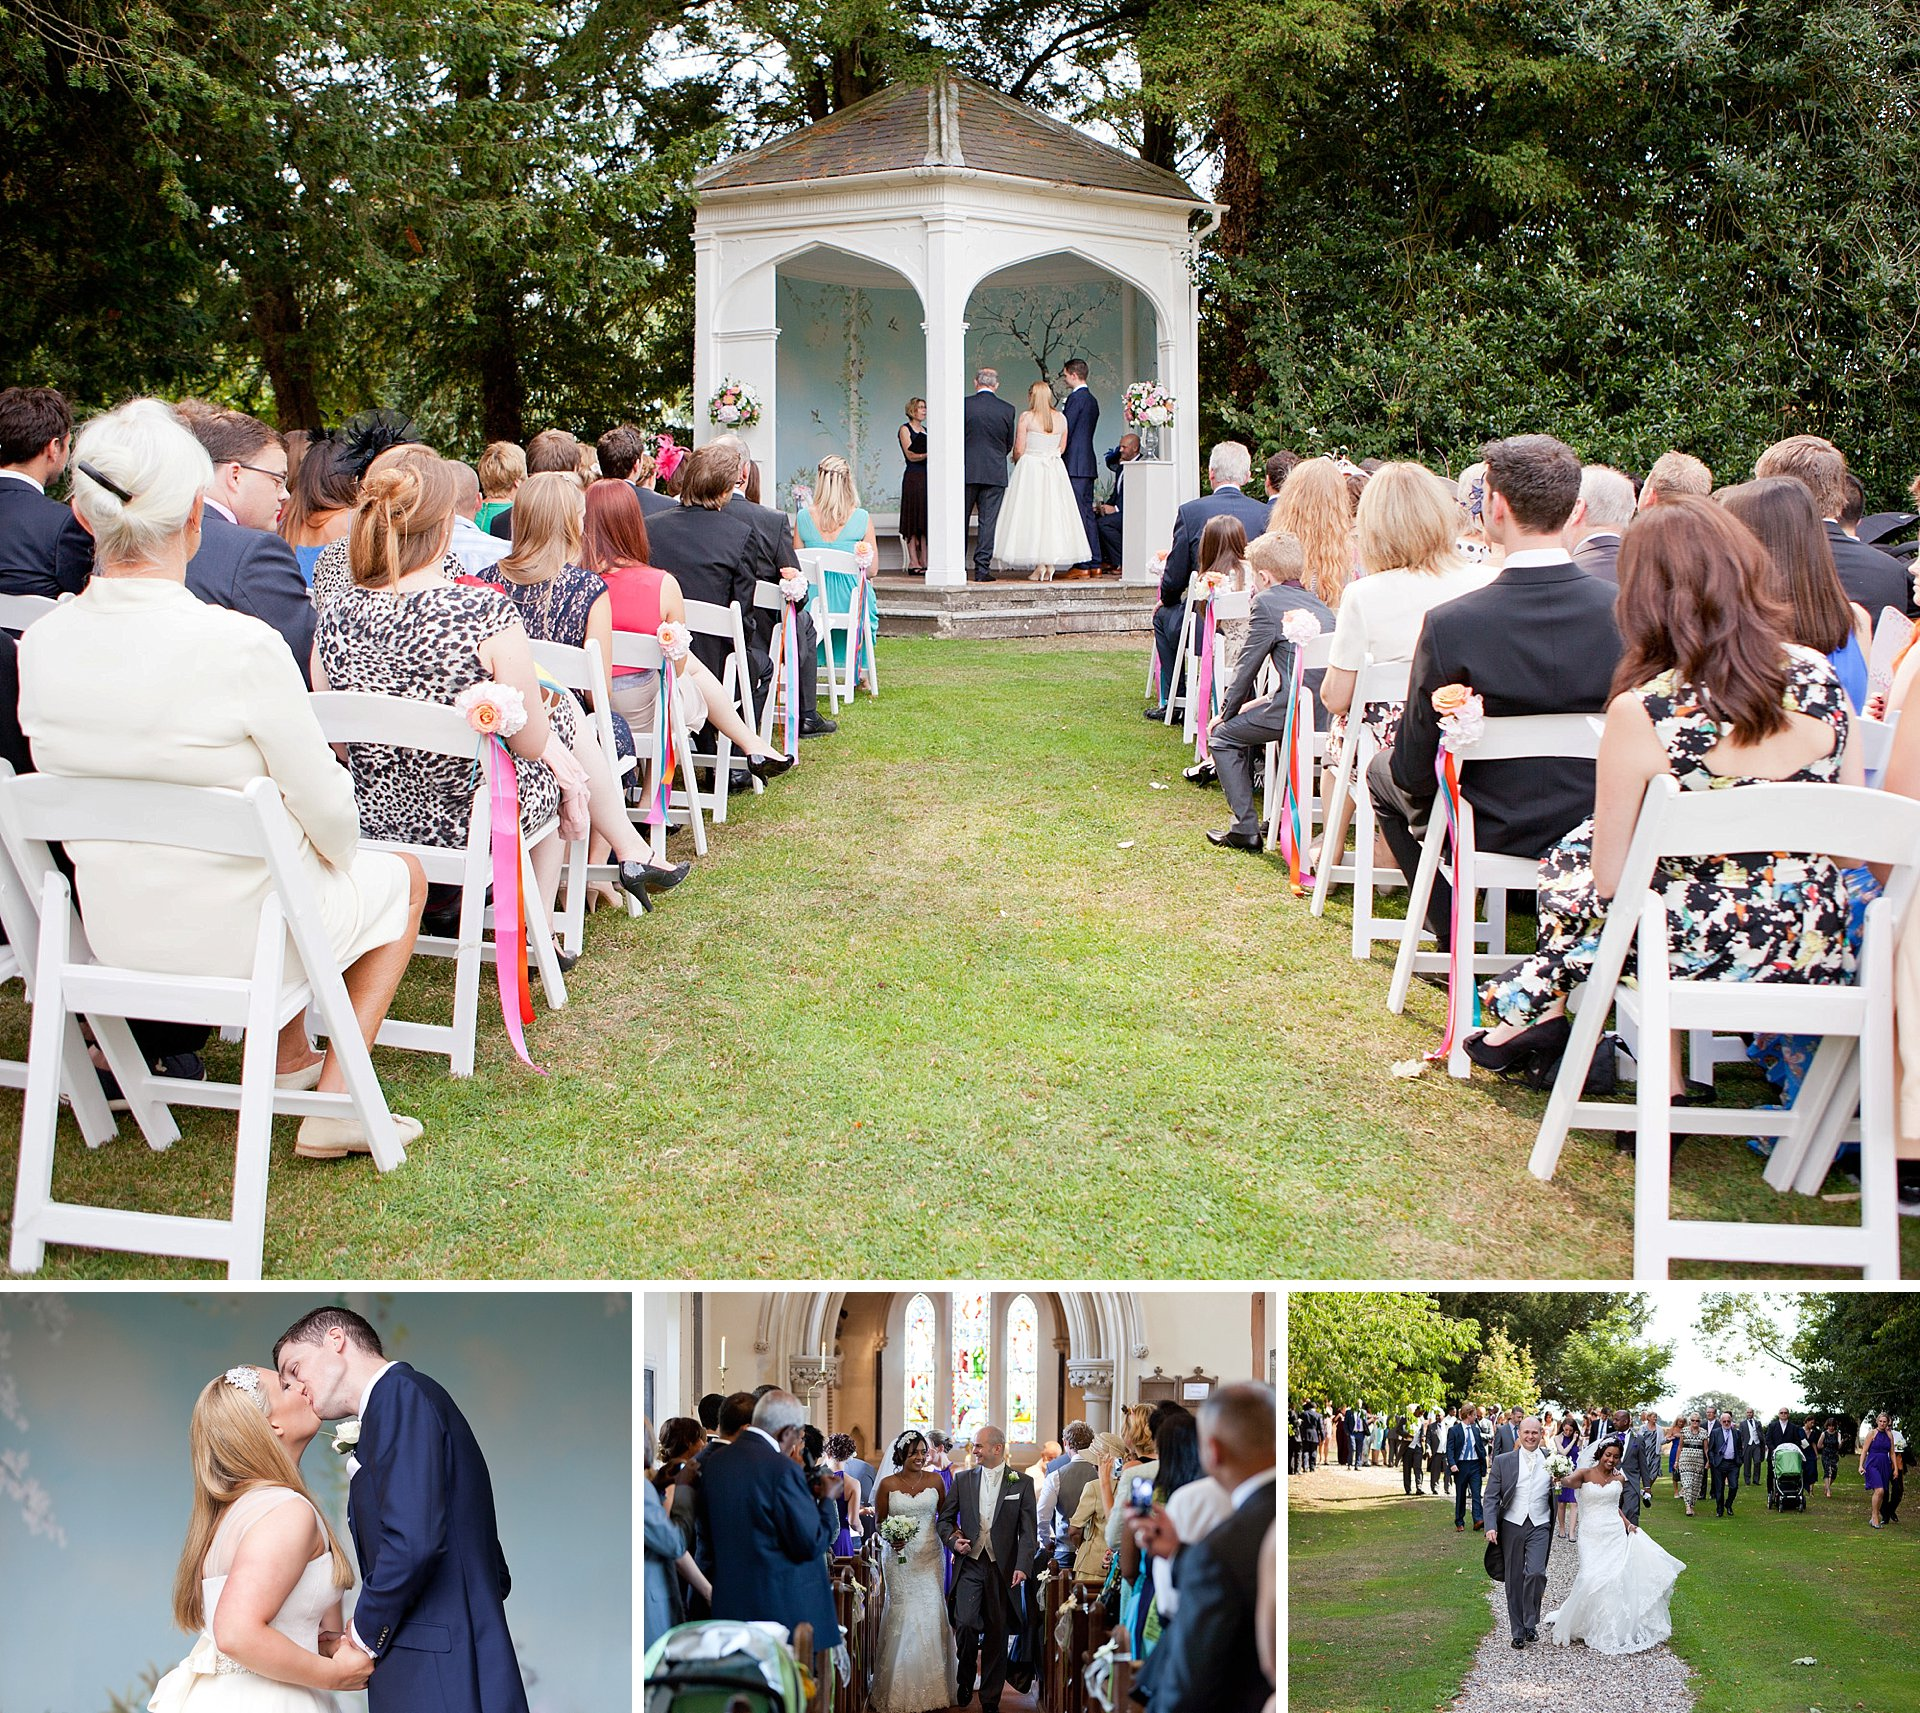 Aldermaston Wedding Ceremonies